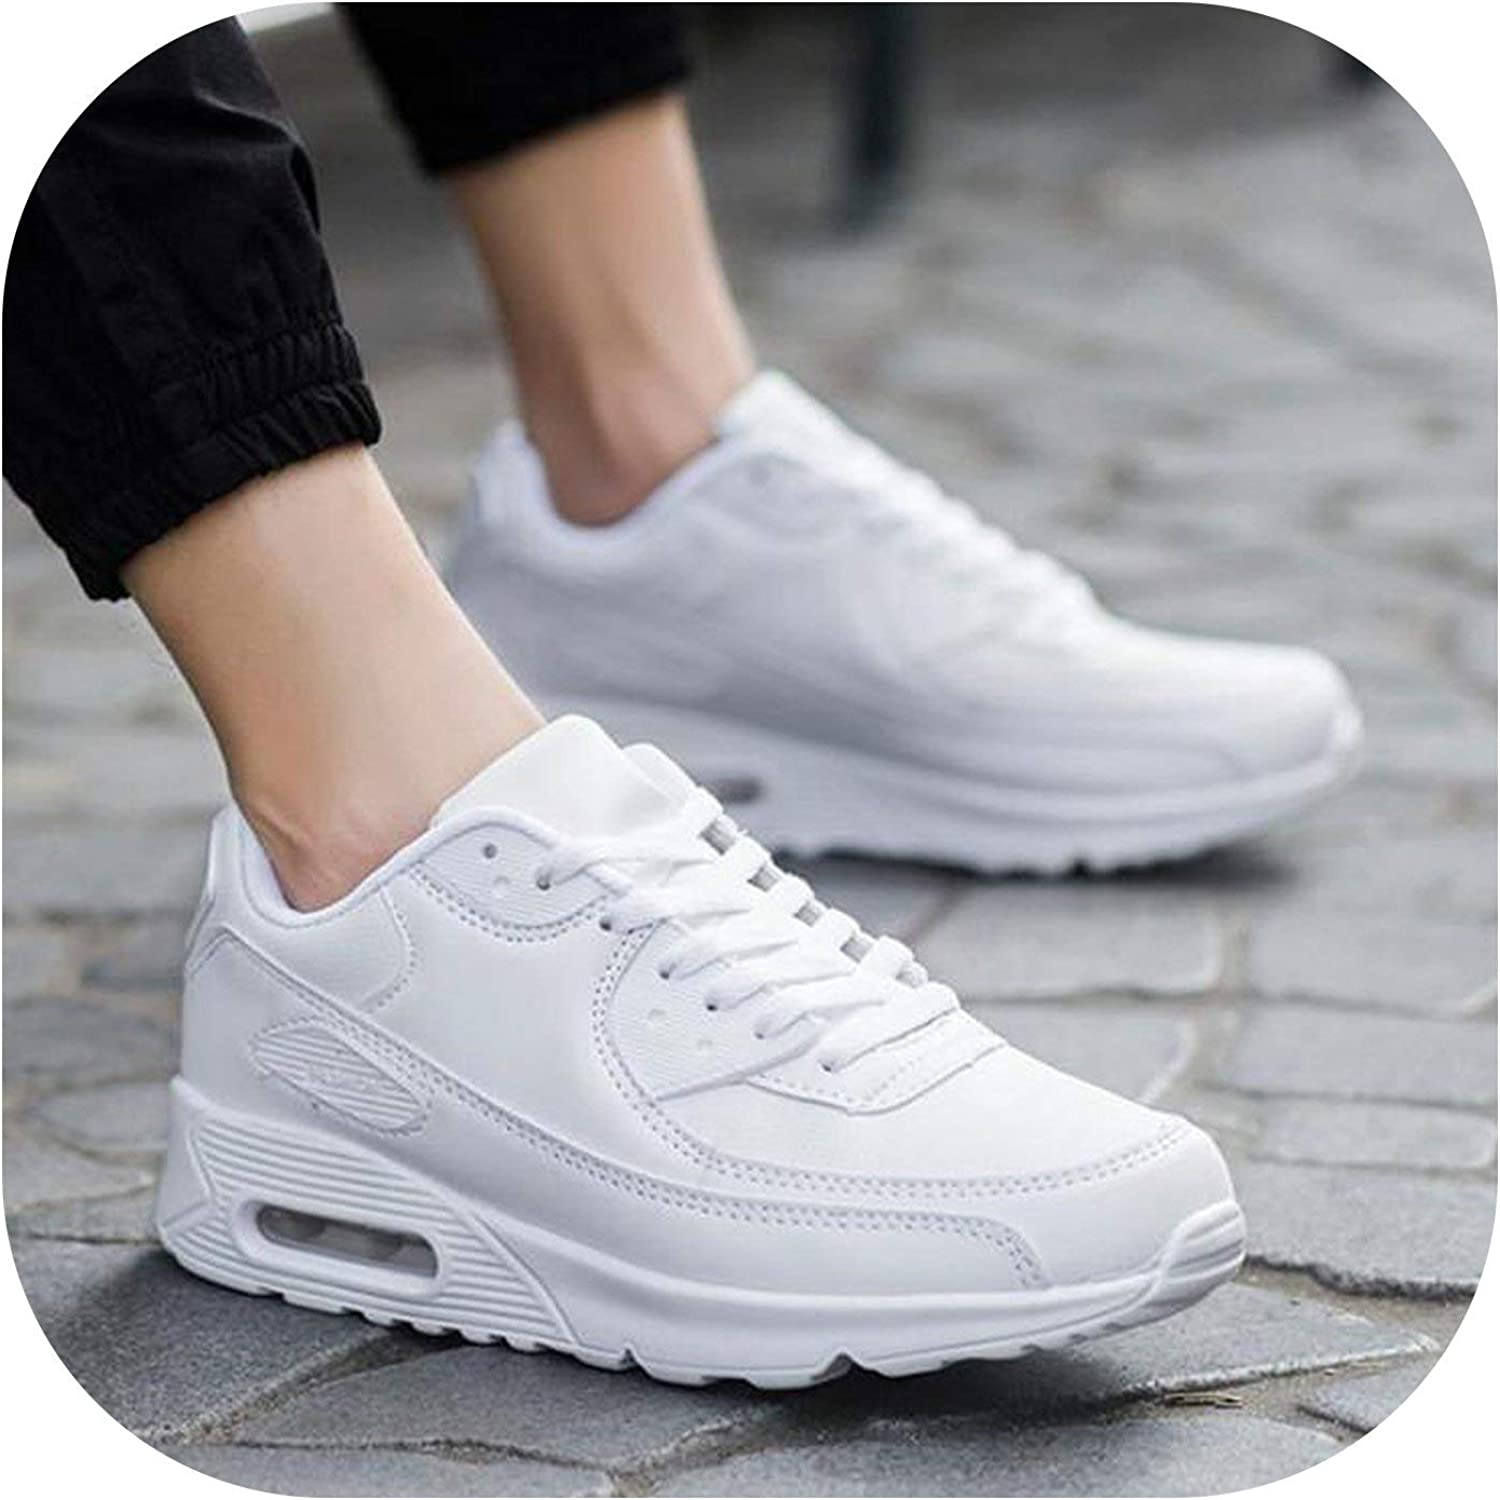 Men shoes Sneakers Breathable Light Weight Footwear Krasovki Slip On Male shoes Size 35-44